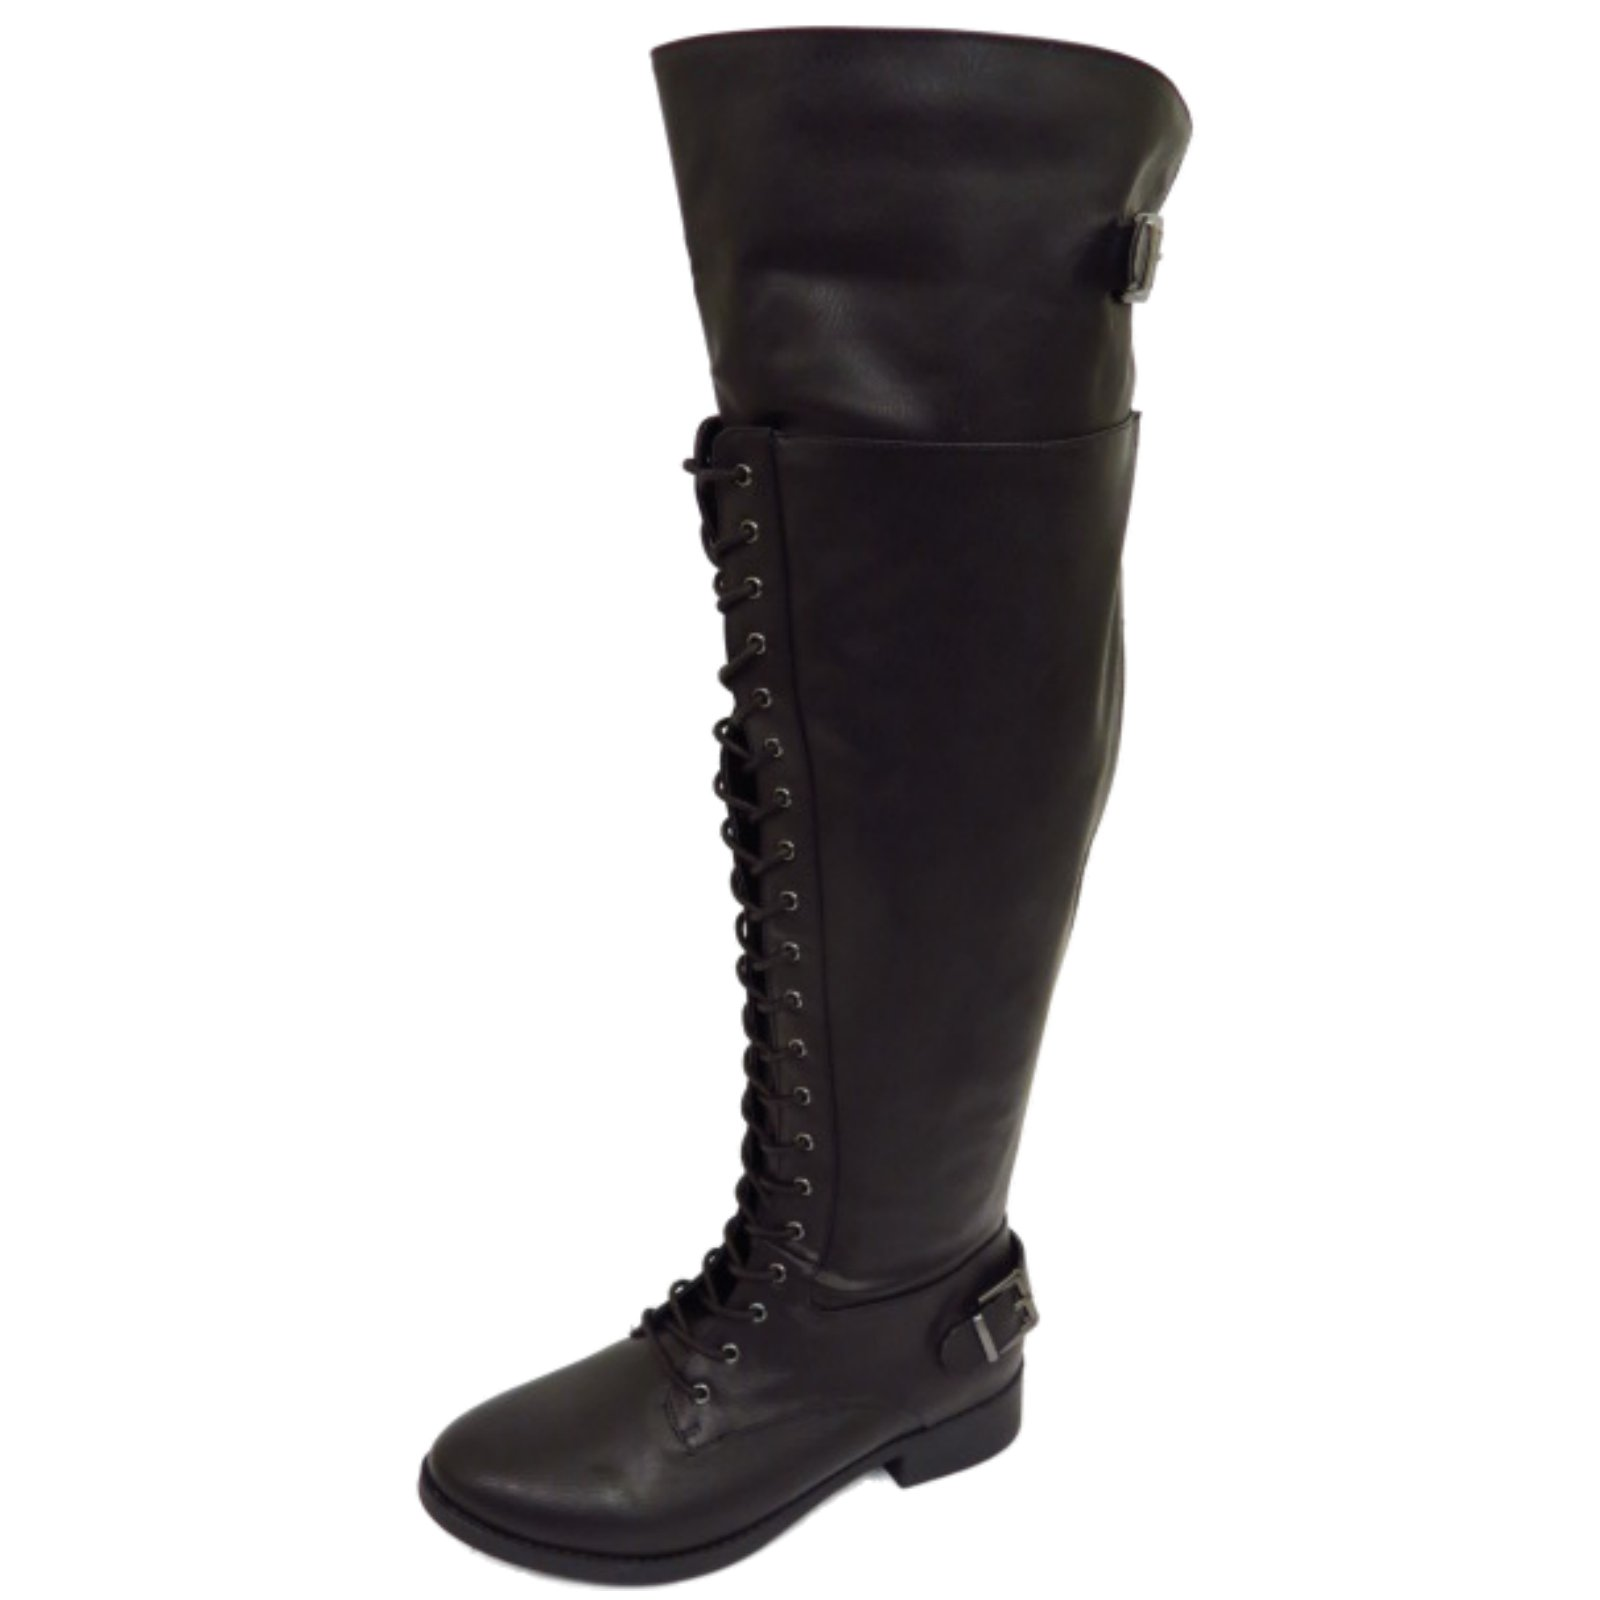 44ad7d27155d Details about WOMENS BLACK EXTRA WIDE CALF FIT LACE-UP BIKER KNEE-HIGH  RIDING TALL BOOTS 6-11